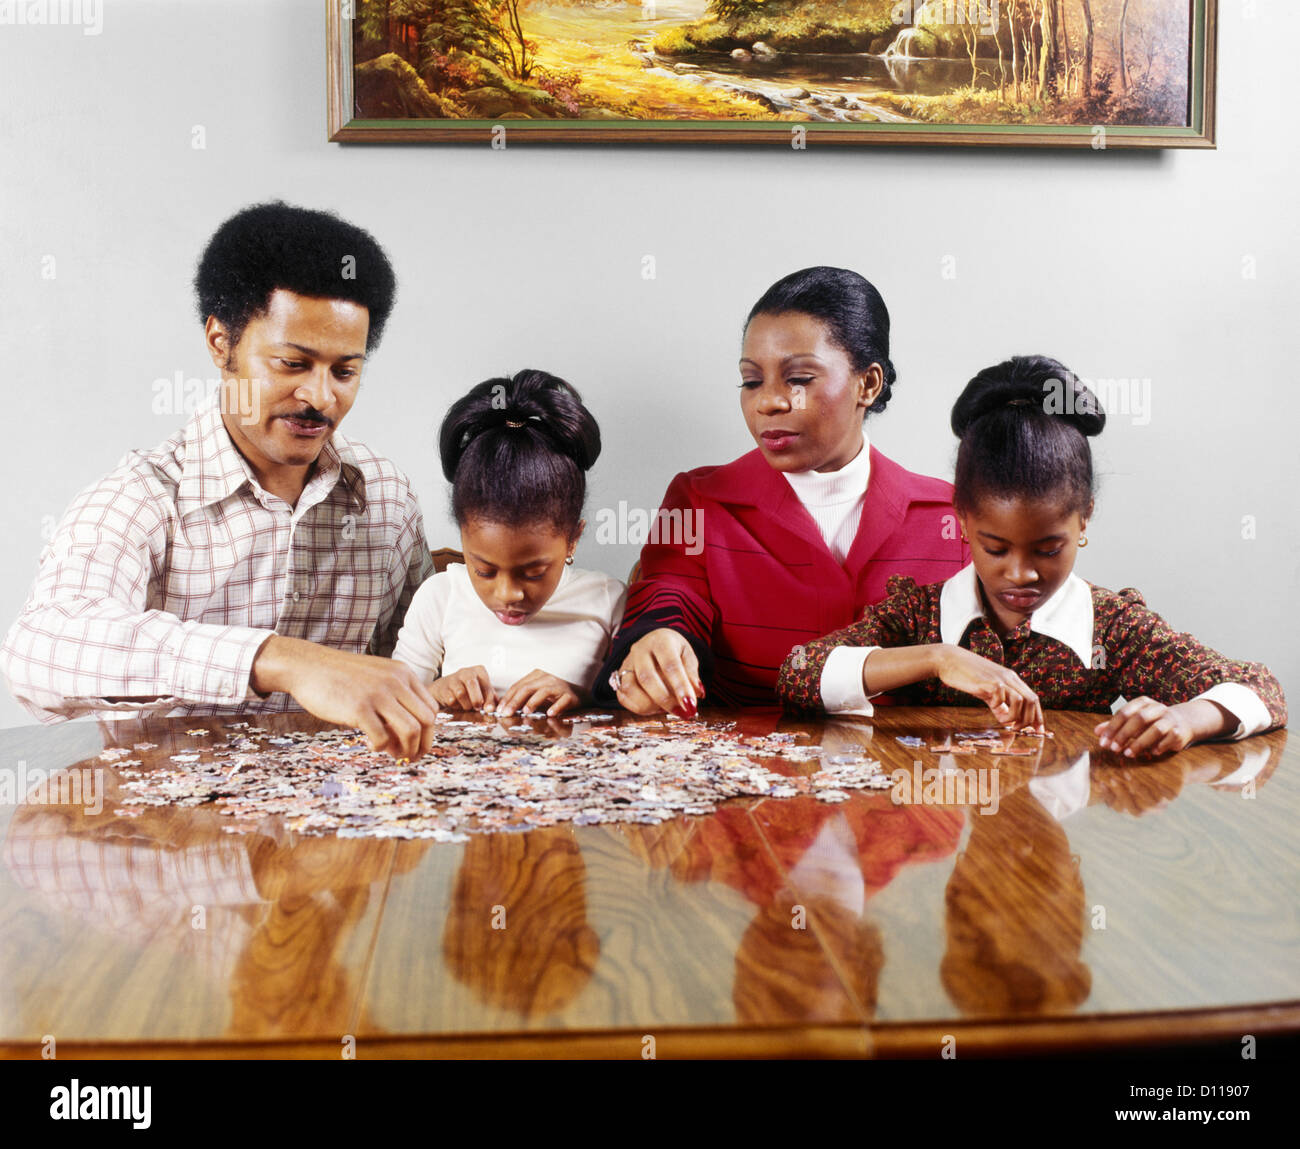 1970s AFRICAN AMERICAN FAMILY FATHER MOTHER TWO DAUGHTERS SITTING AT TABLE DOING JIGSAW PUZZLE - Stock Image